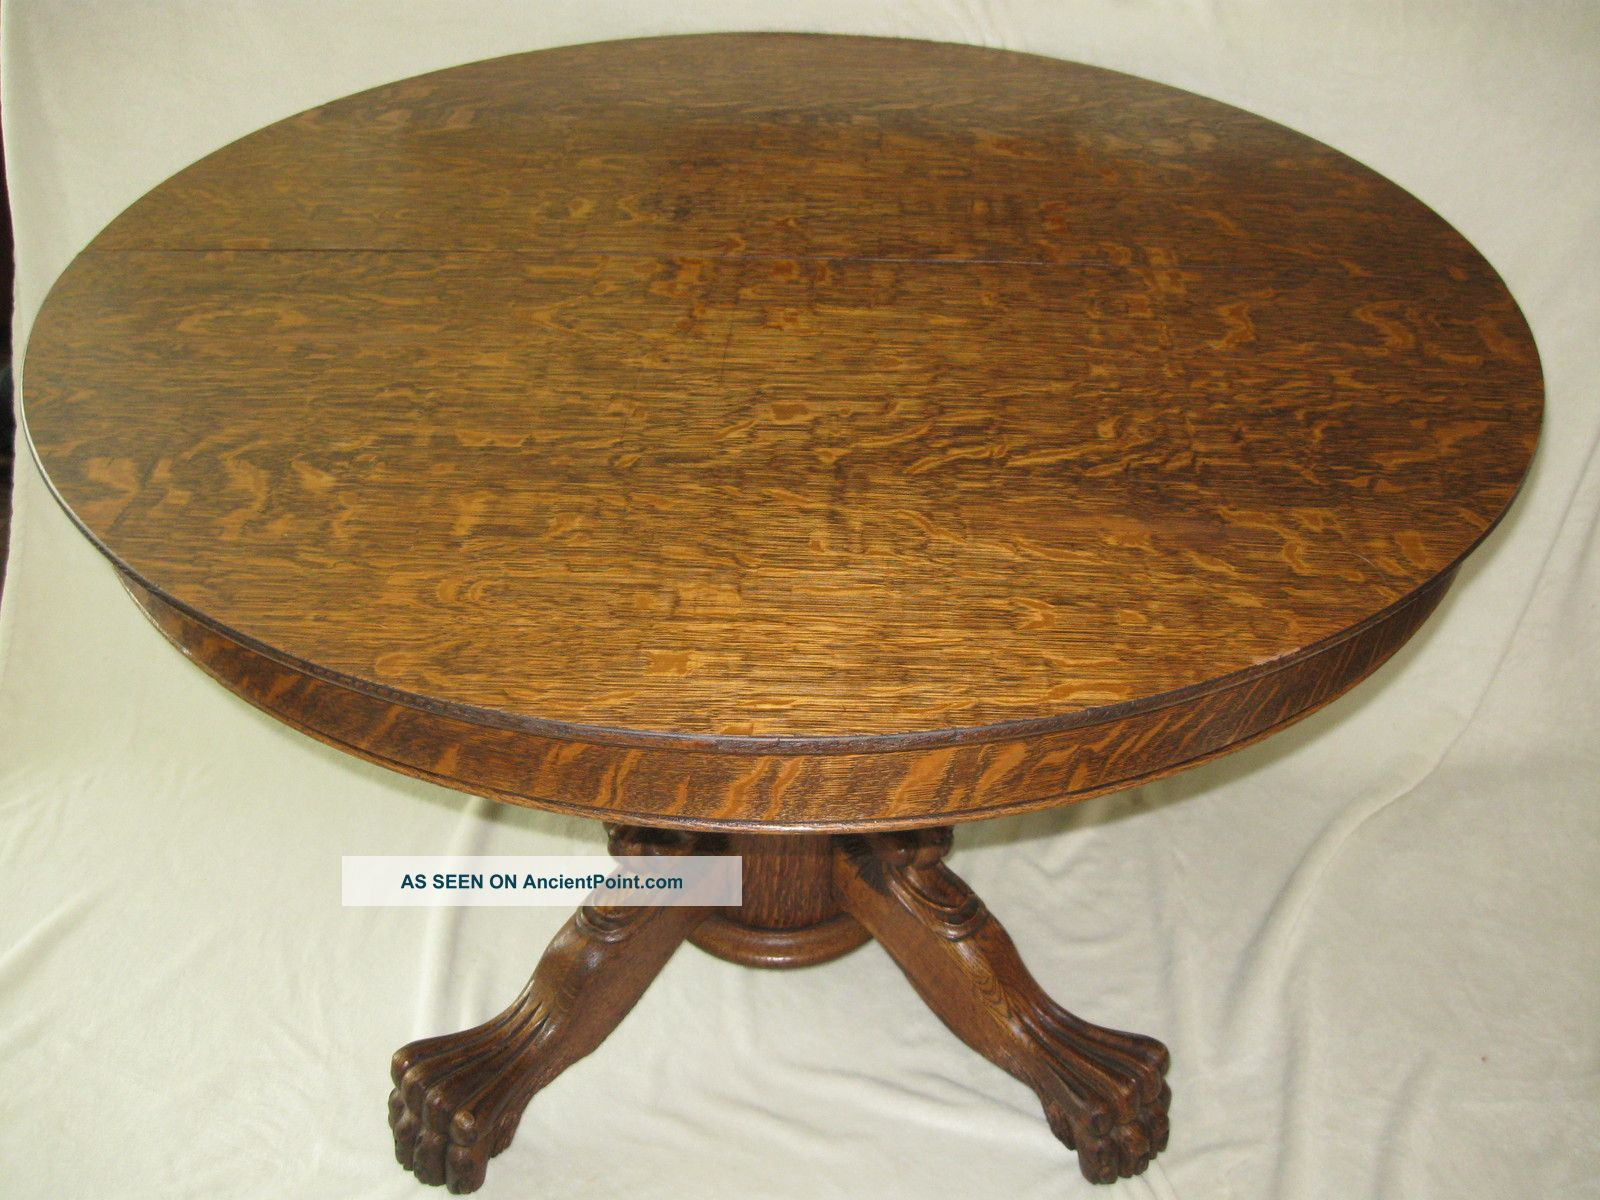 Dining Table Tiger Oak Dining Table : antiquetigeroakpedestaltablecirca19001lgw from choicediningtable.blogspot.com size 1600 x 1200 jpeg 268kB